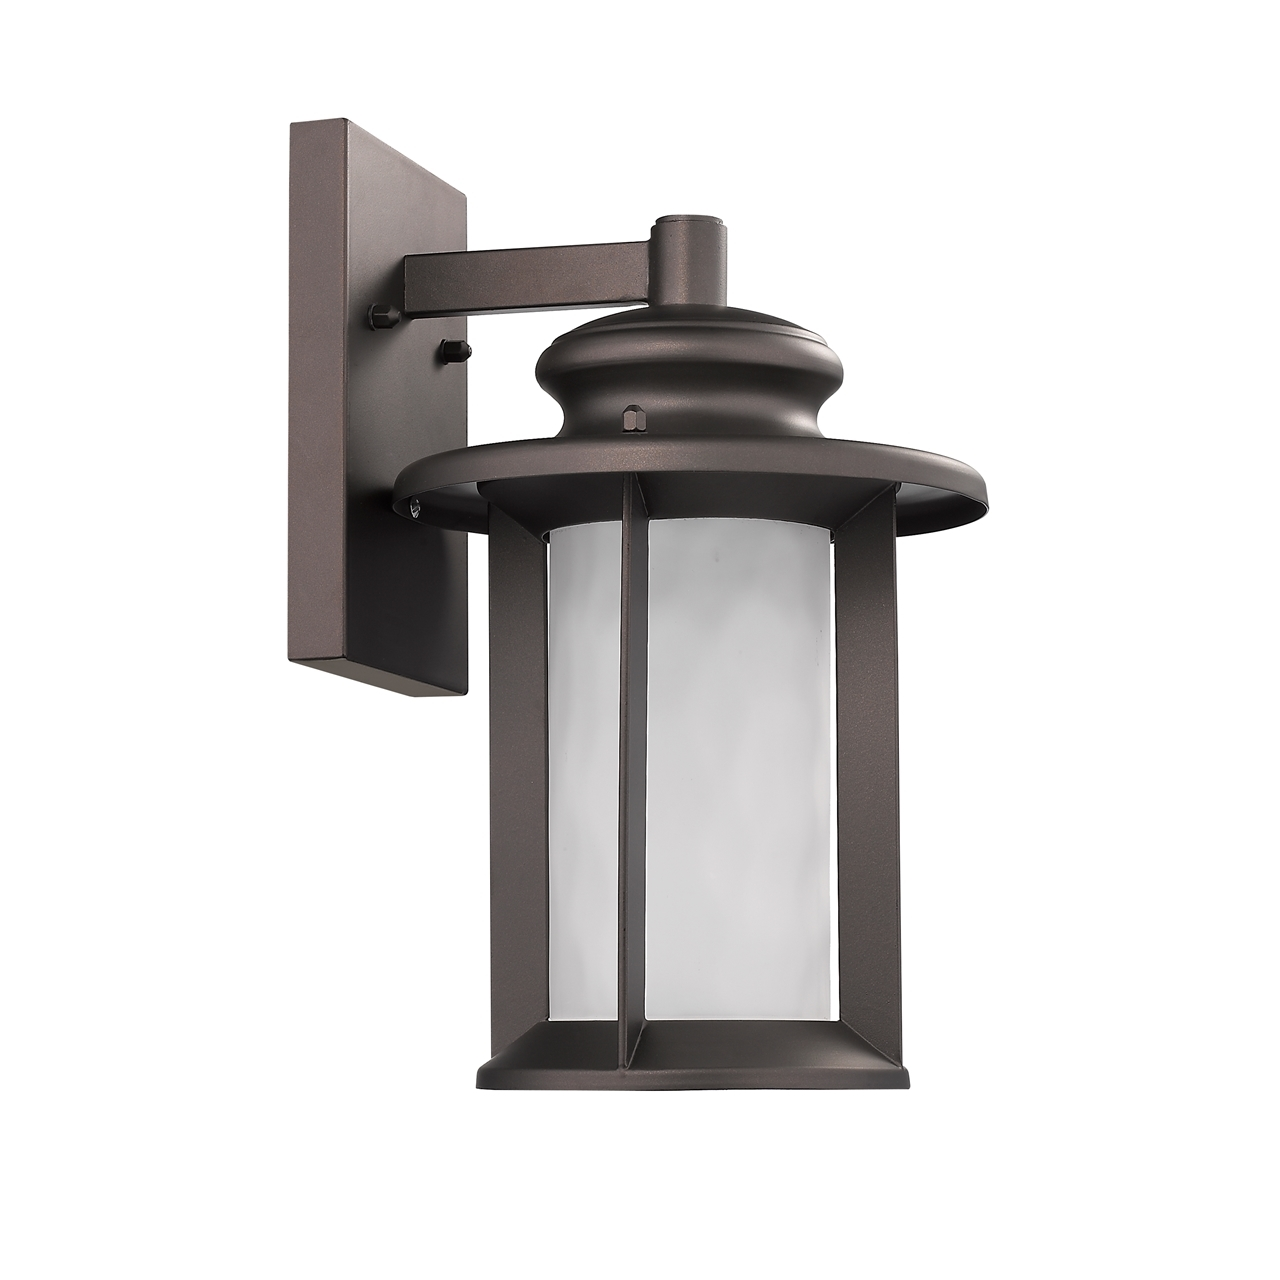 CHLOE Lighting, Inc CH2S074RB12-ODL LED Outdoor Sconce on Led Sconce Lighting id=57218